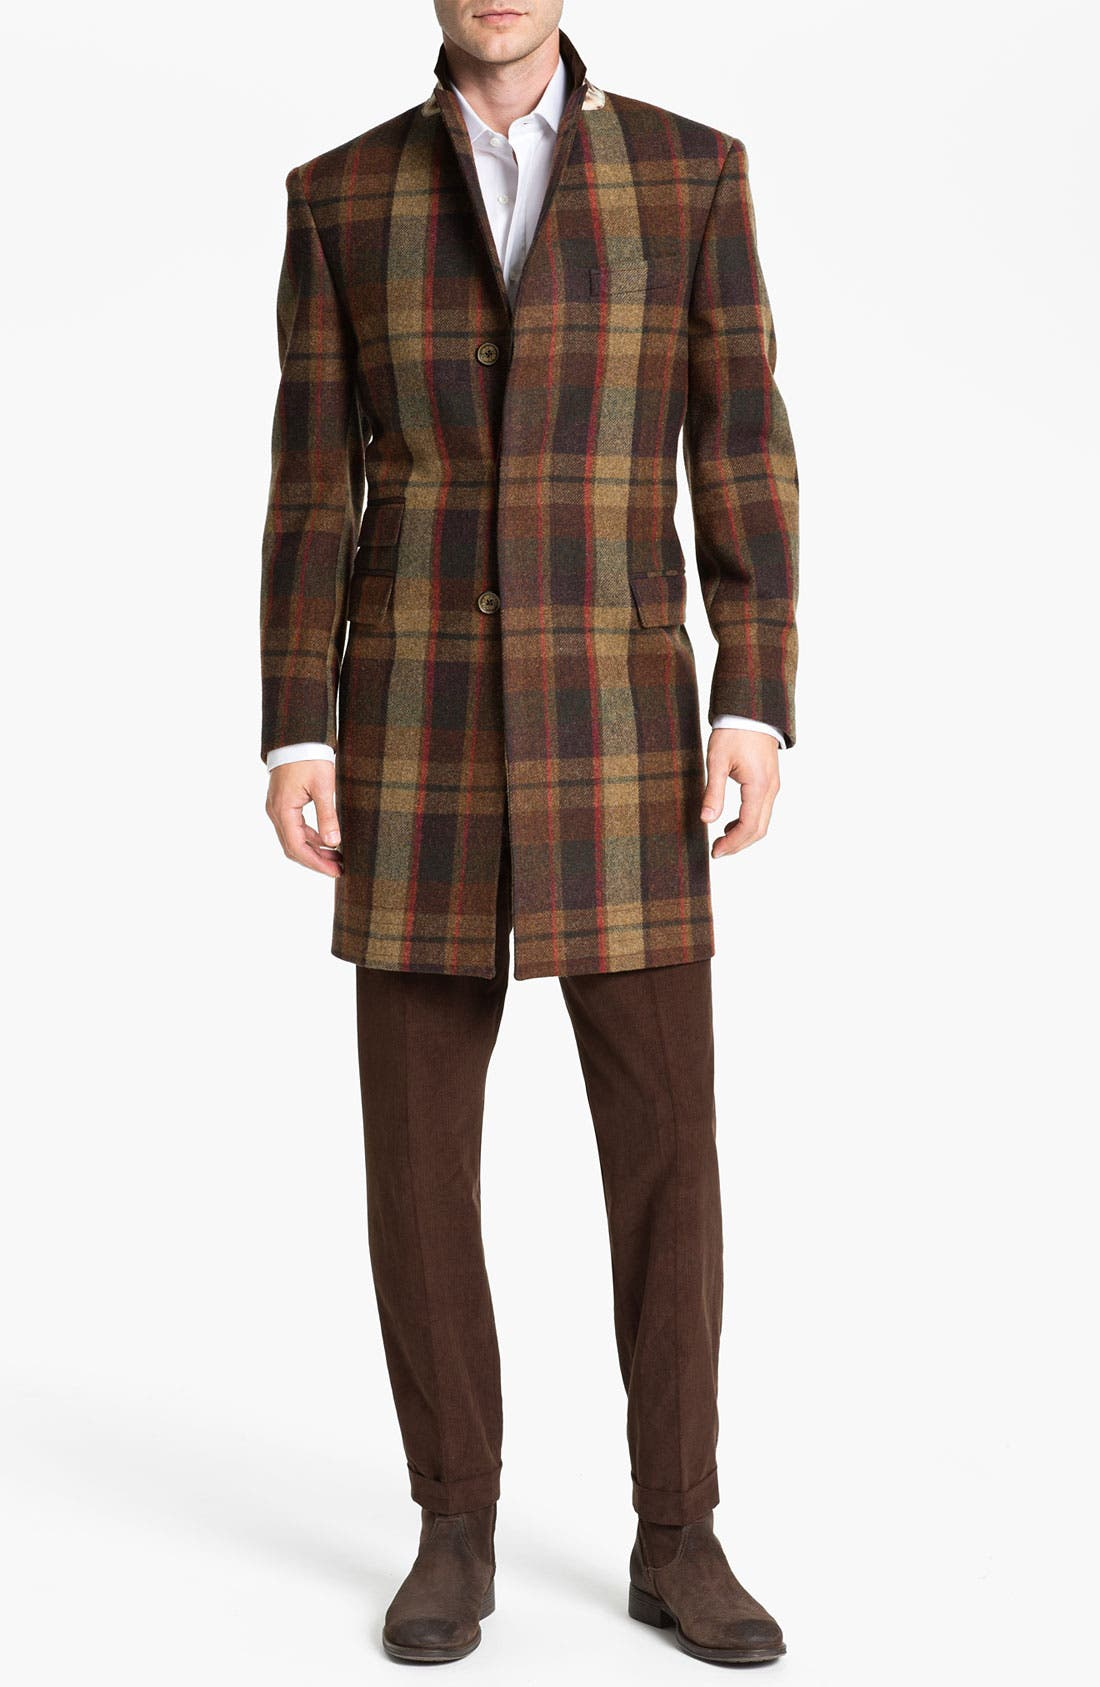 Main Image - Ted Baker London 'Global' Trim Fit Plaid Top Coat (Online Exclusive)